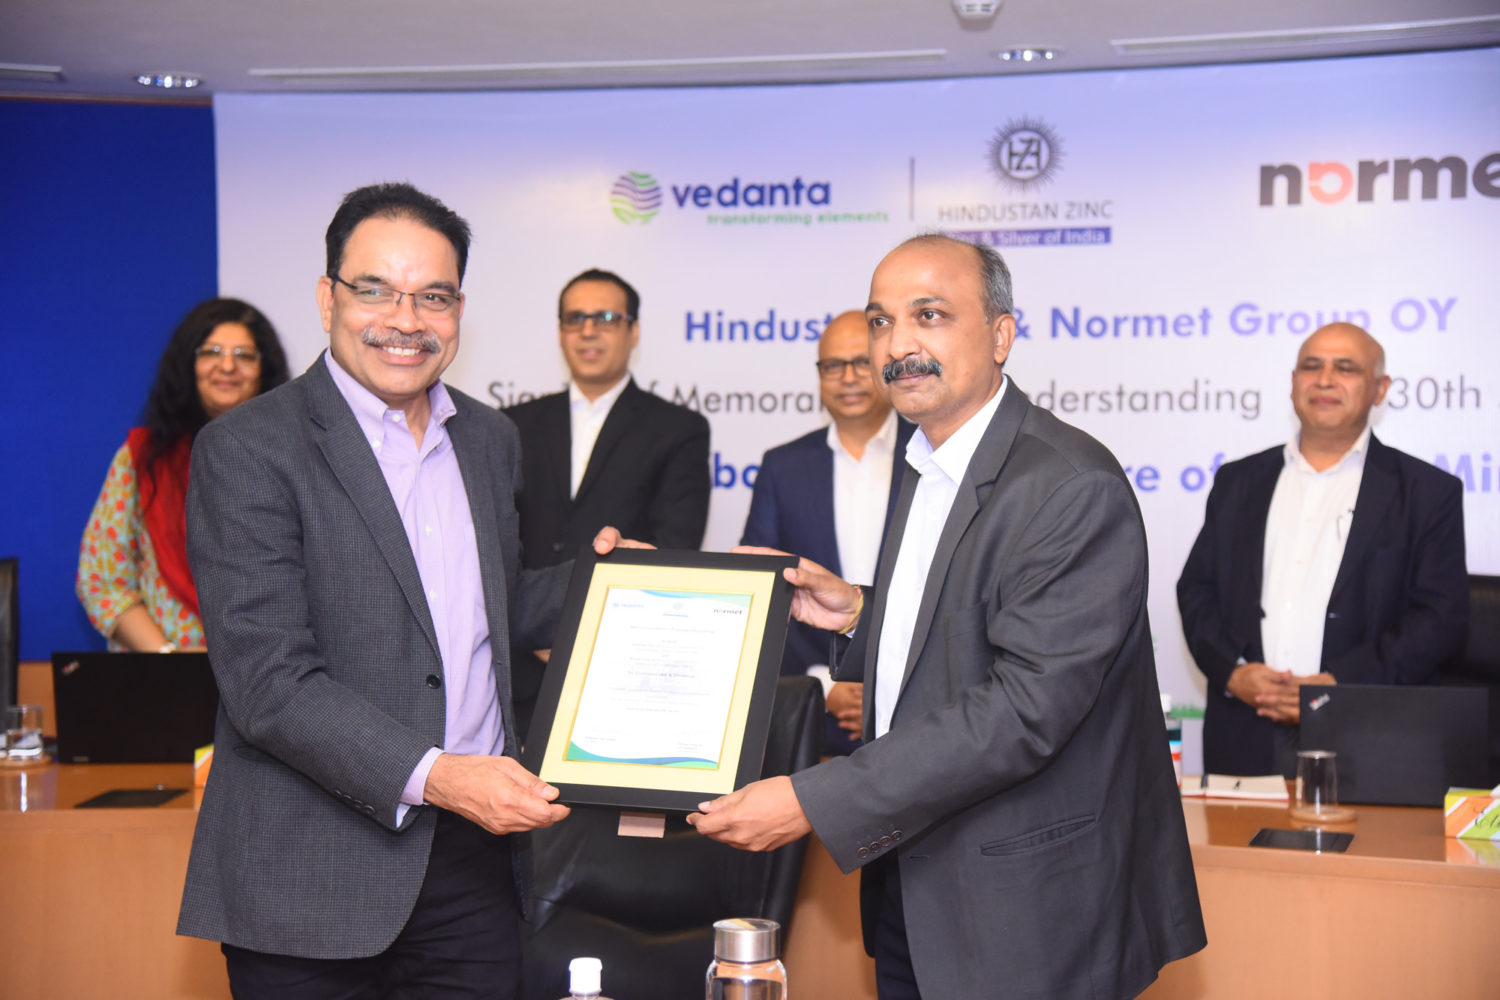 Normet Group Oy and Hindustan Zinc Limited signed a Memorandum of Understanding (MoU) to deploy battery-powered service equipment and utility vehicle in their underground mining.